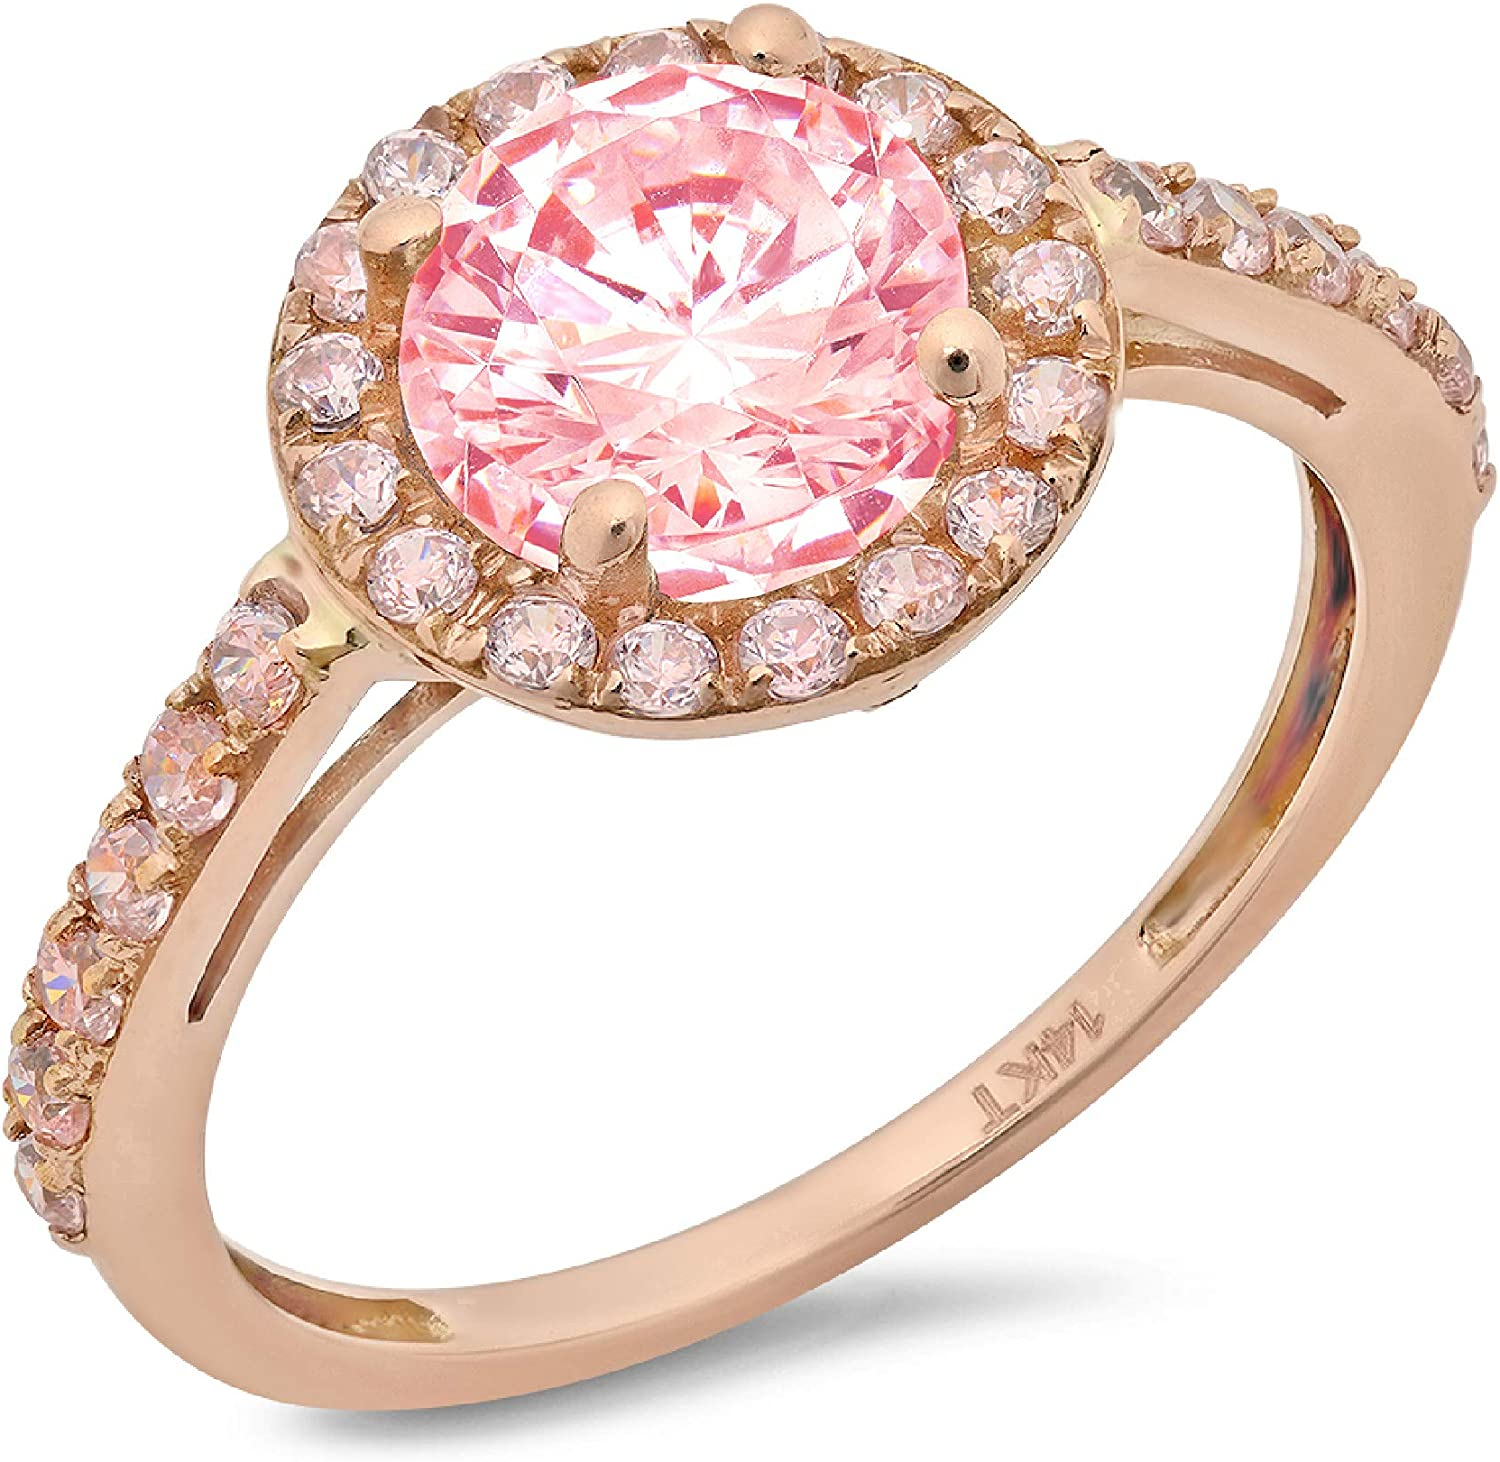 2.34ct Brilliant Round Cut Solitaire Halo Pink Ideal VVS1 Simulated Diamond CZ Engagement Promise Statement Anniversary Bridal Wedding Accent Ring Solid 14k Rose Gold